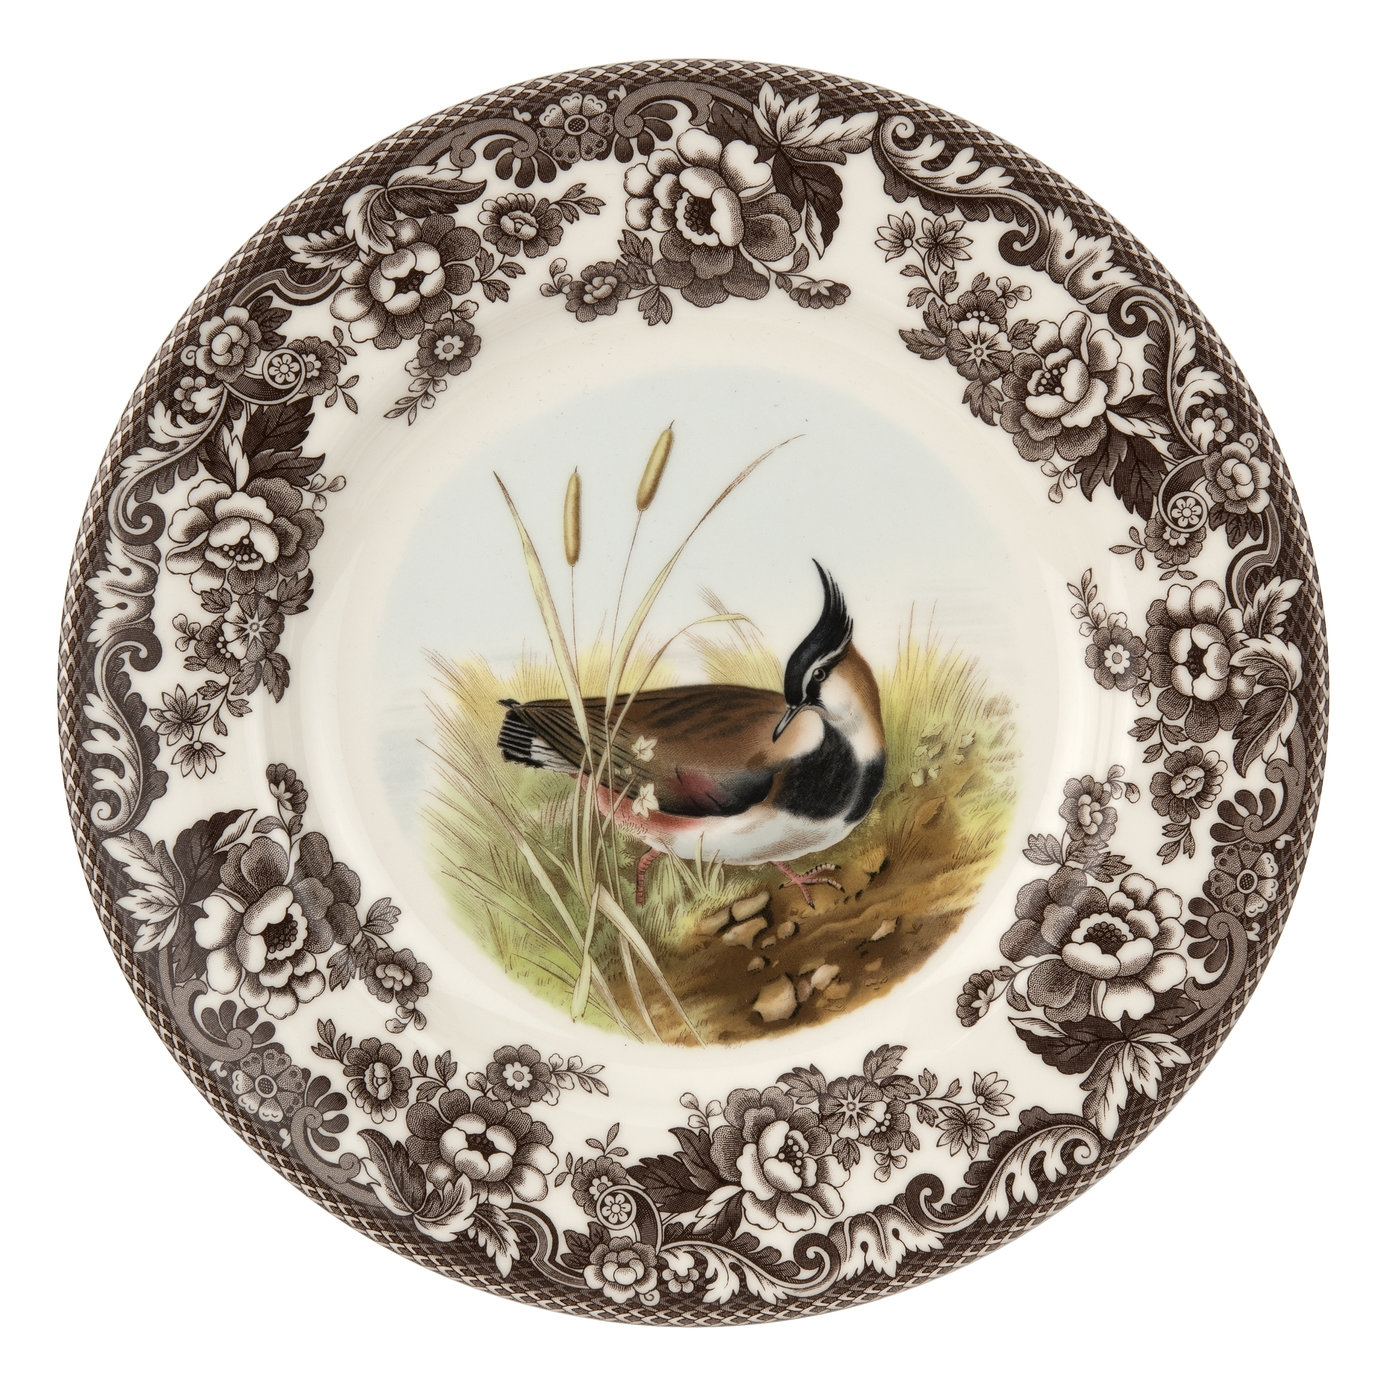 Spode Woodland Dinner Plate 10.5 Inch (Lapwing) image number 0